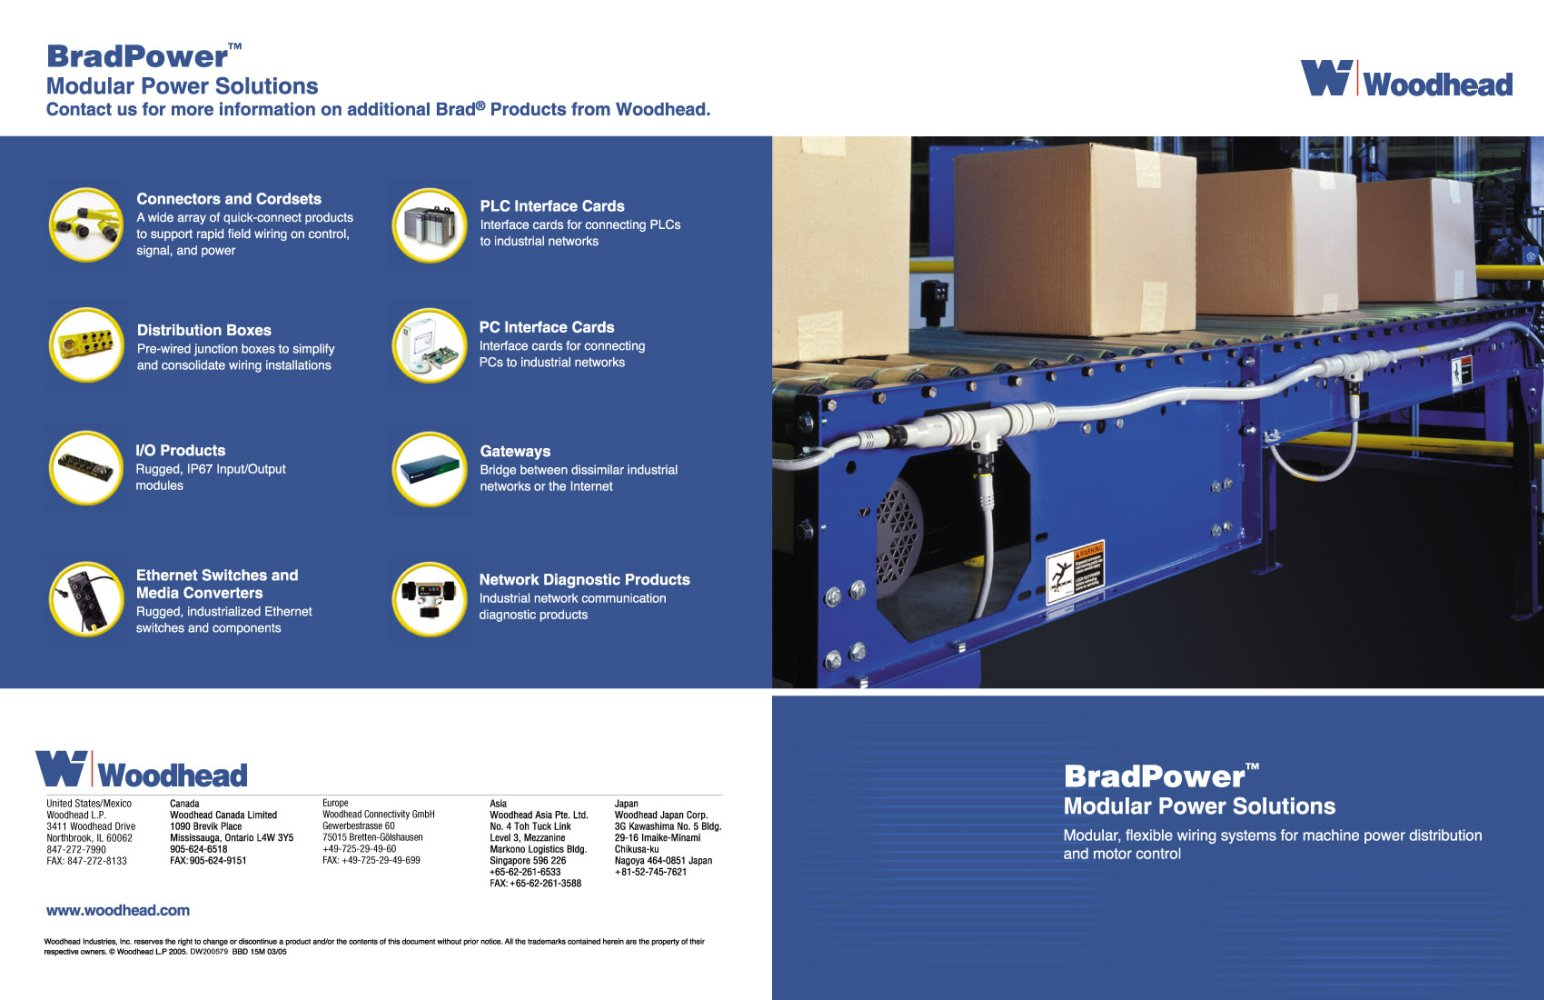 BradPower Modular Power Solutions (modular, flexible wiring systems ...